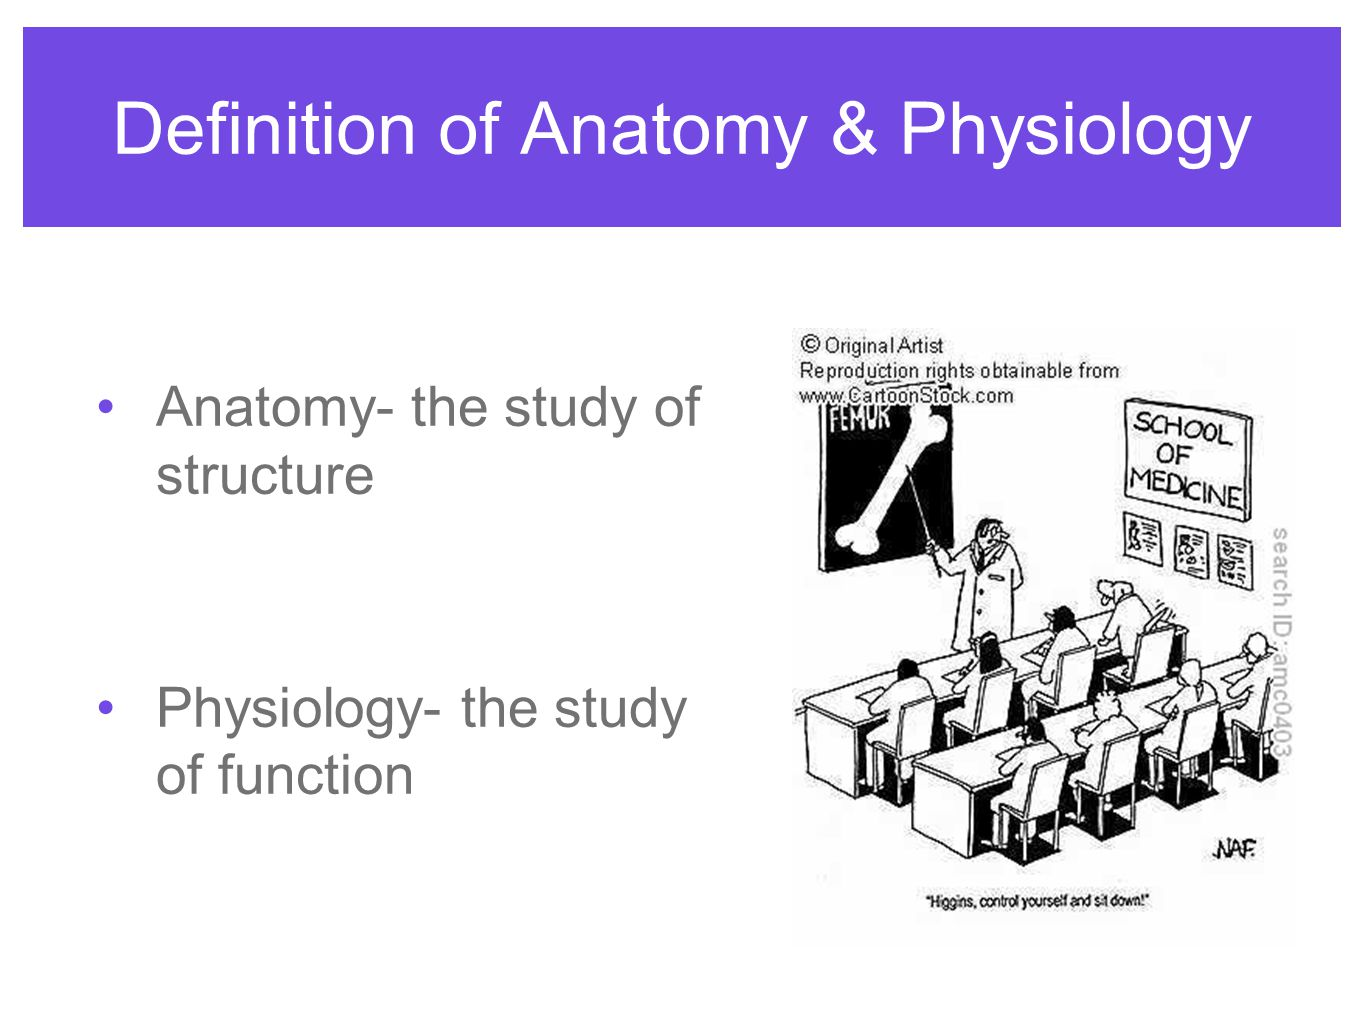 an analysis of muscle function and anatomy in sports Anatomy of the human body muscular system ☑ specific analysis and functions  of all muscles & muscle groups ☑ animations, pictures, and diagrams teaching.